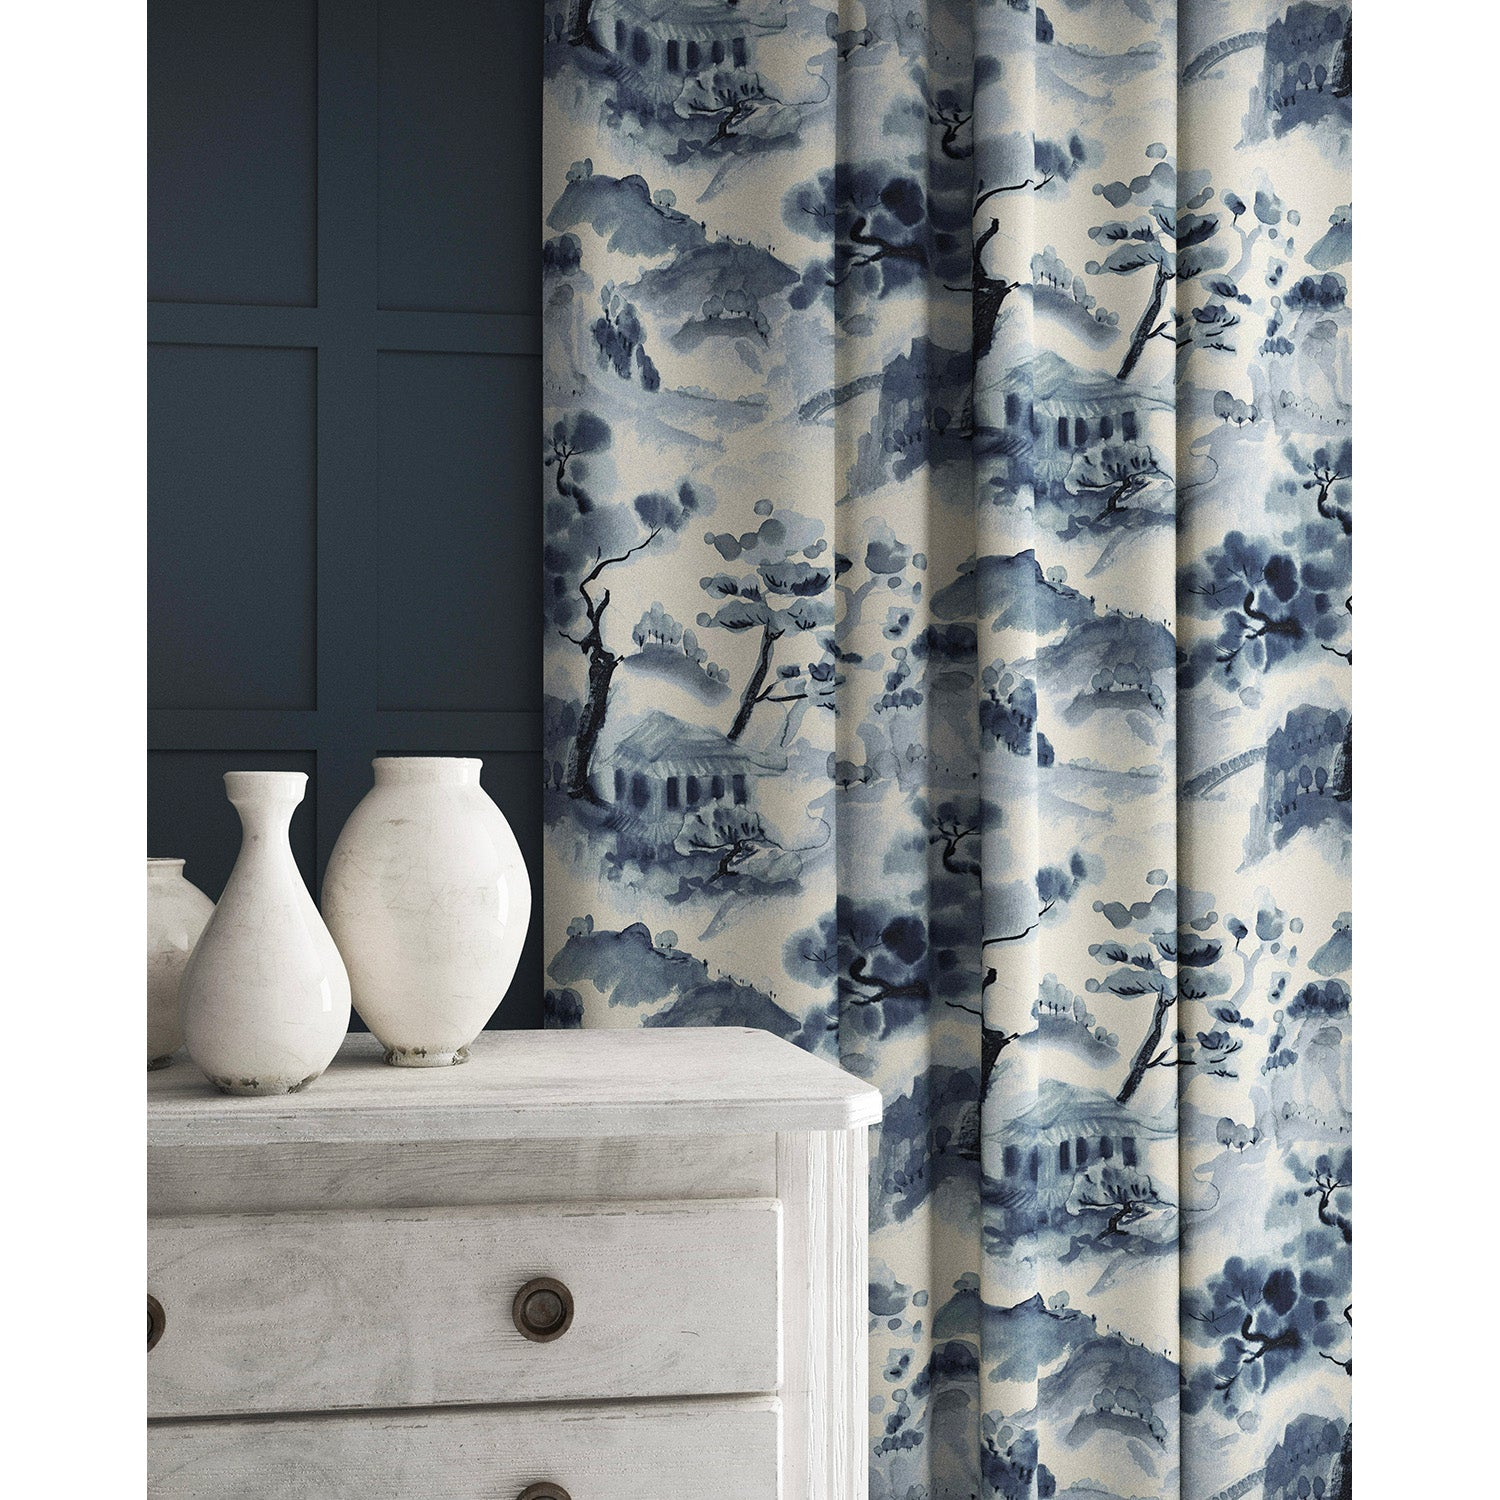 Velvet curtains in a velvet fabric with stain resistant finish and oriental design in white and ink blue colours